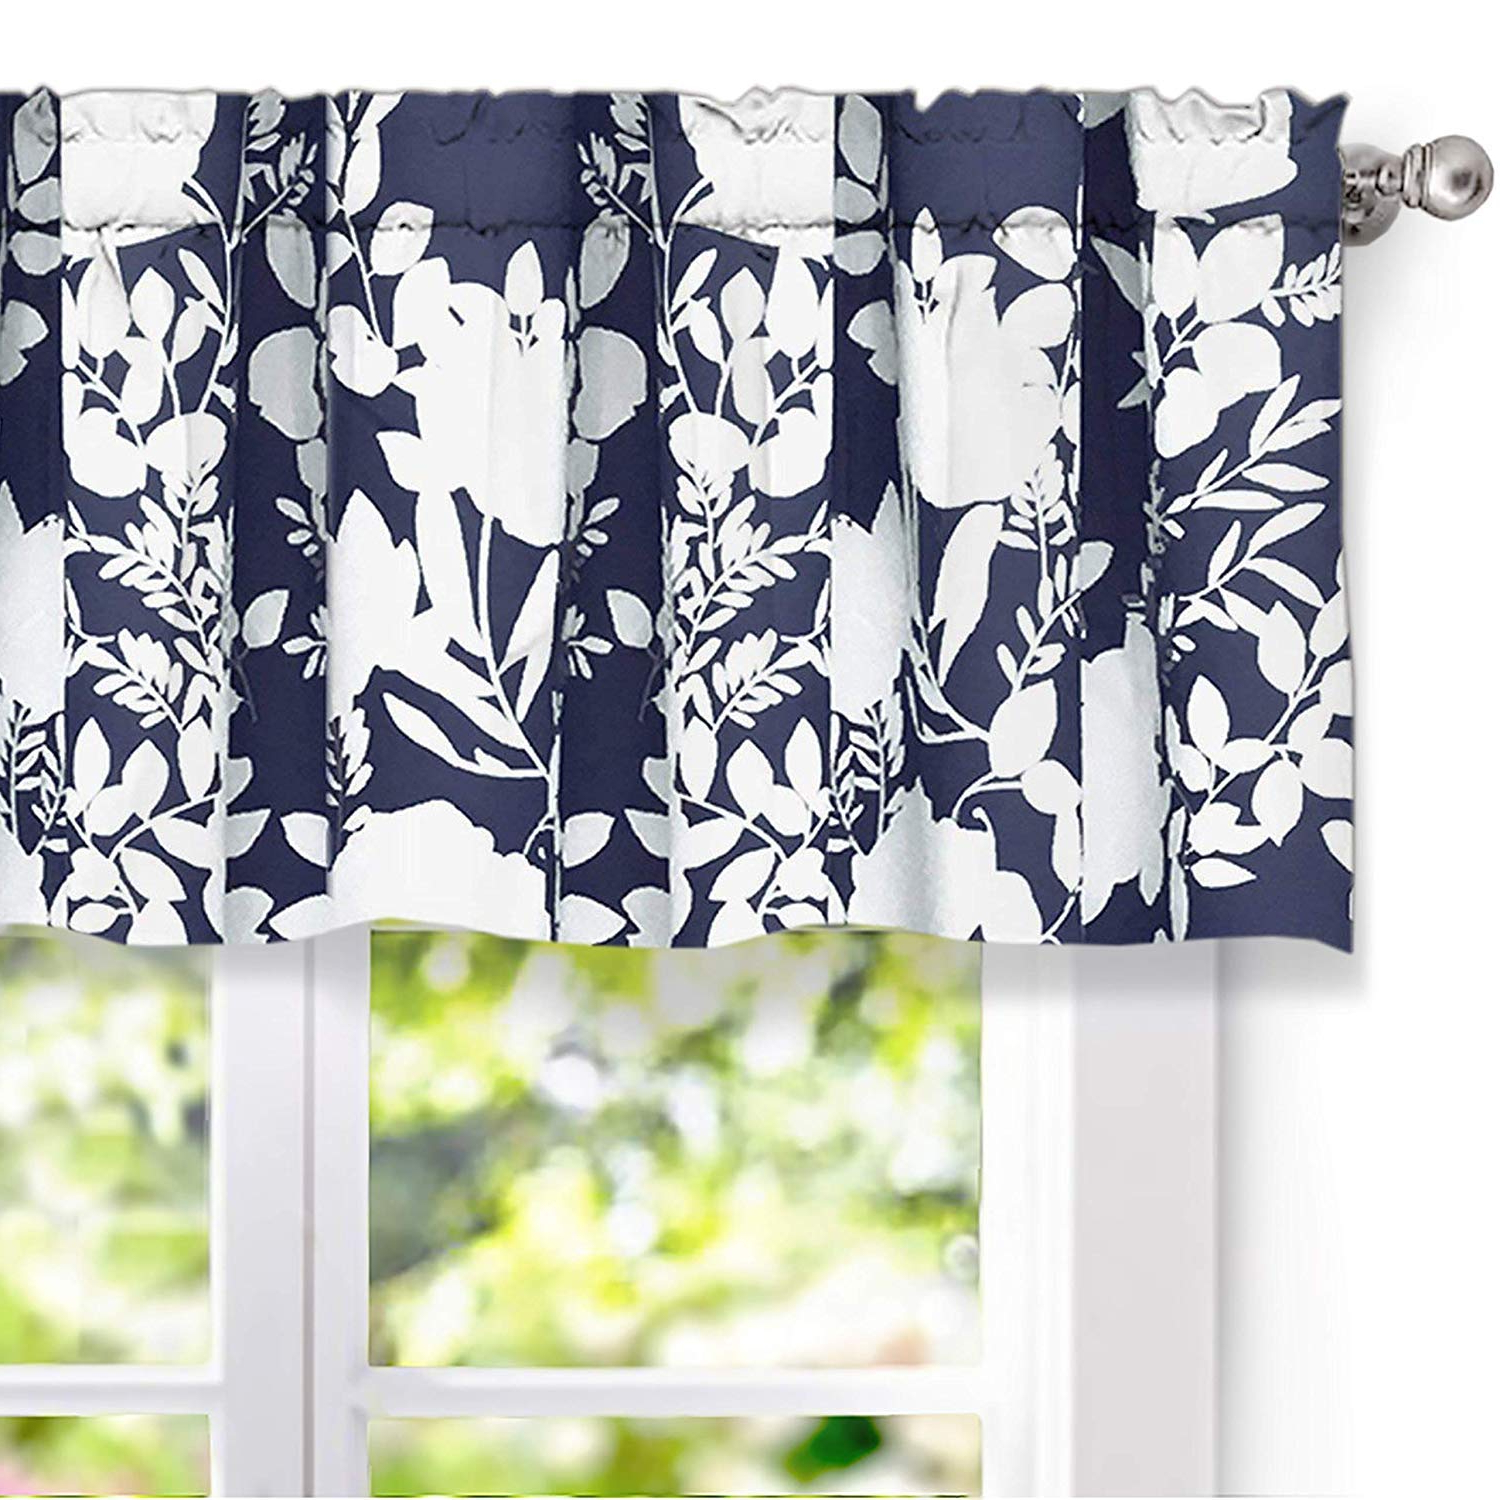 Floral Pattern Window Valances Regarding Favorite Driftaway Floral Delight Botanic Pattern Window Curtain Valance 52 Inch 18 Inch Plus 2 Inch Header Navy (View 3 of 20)